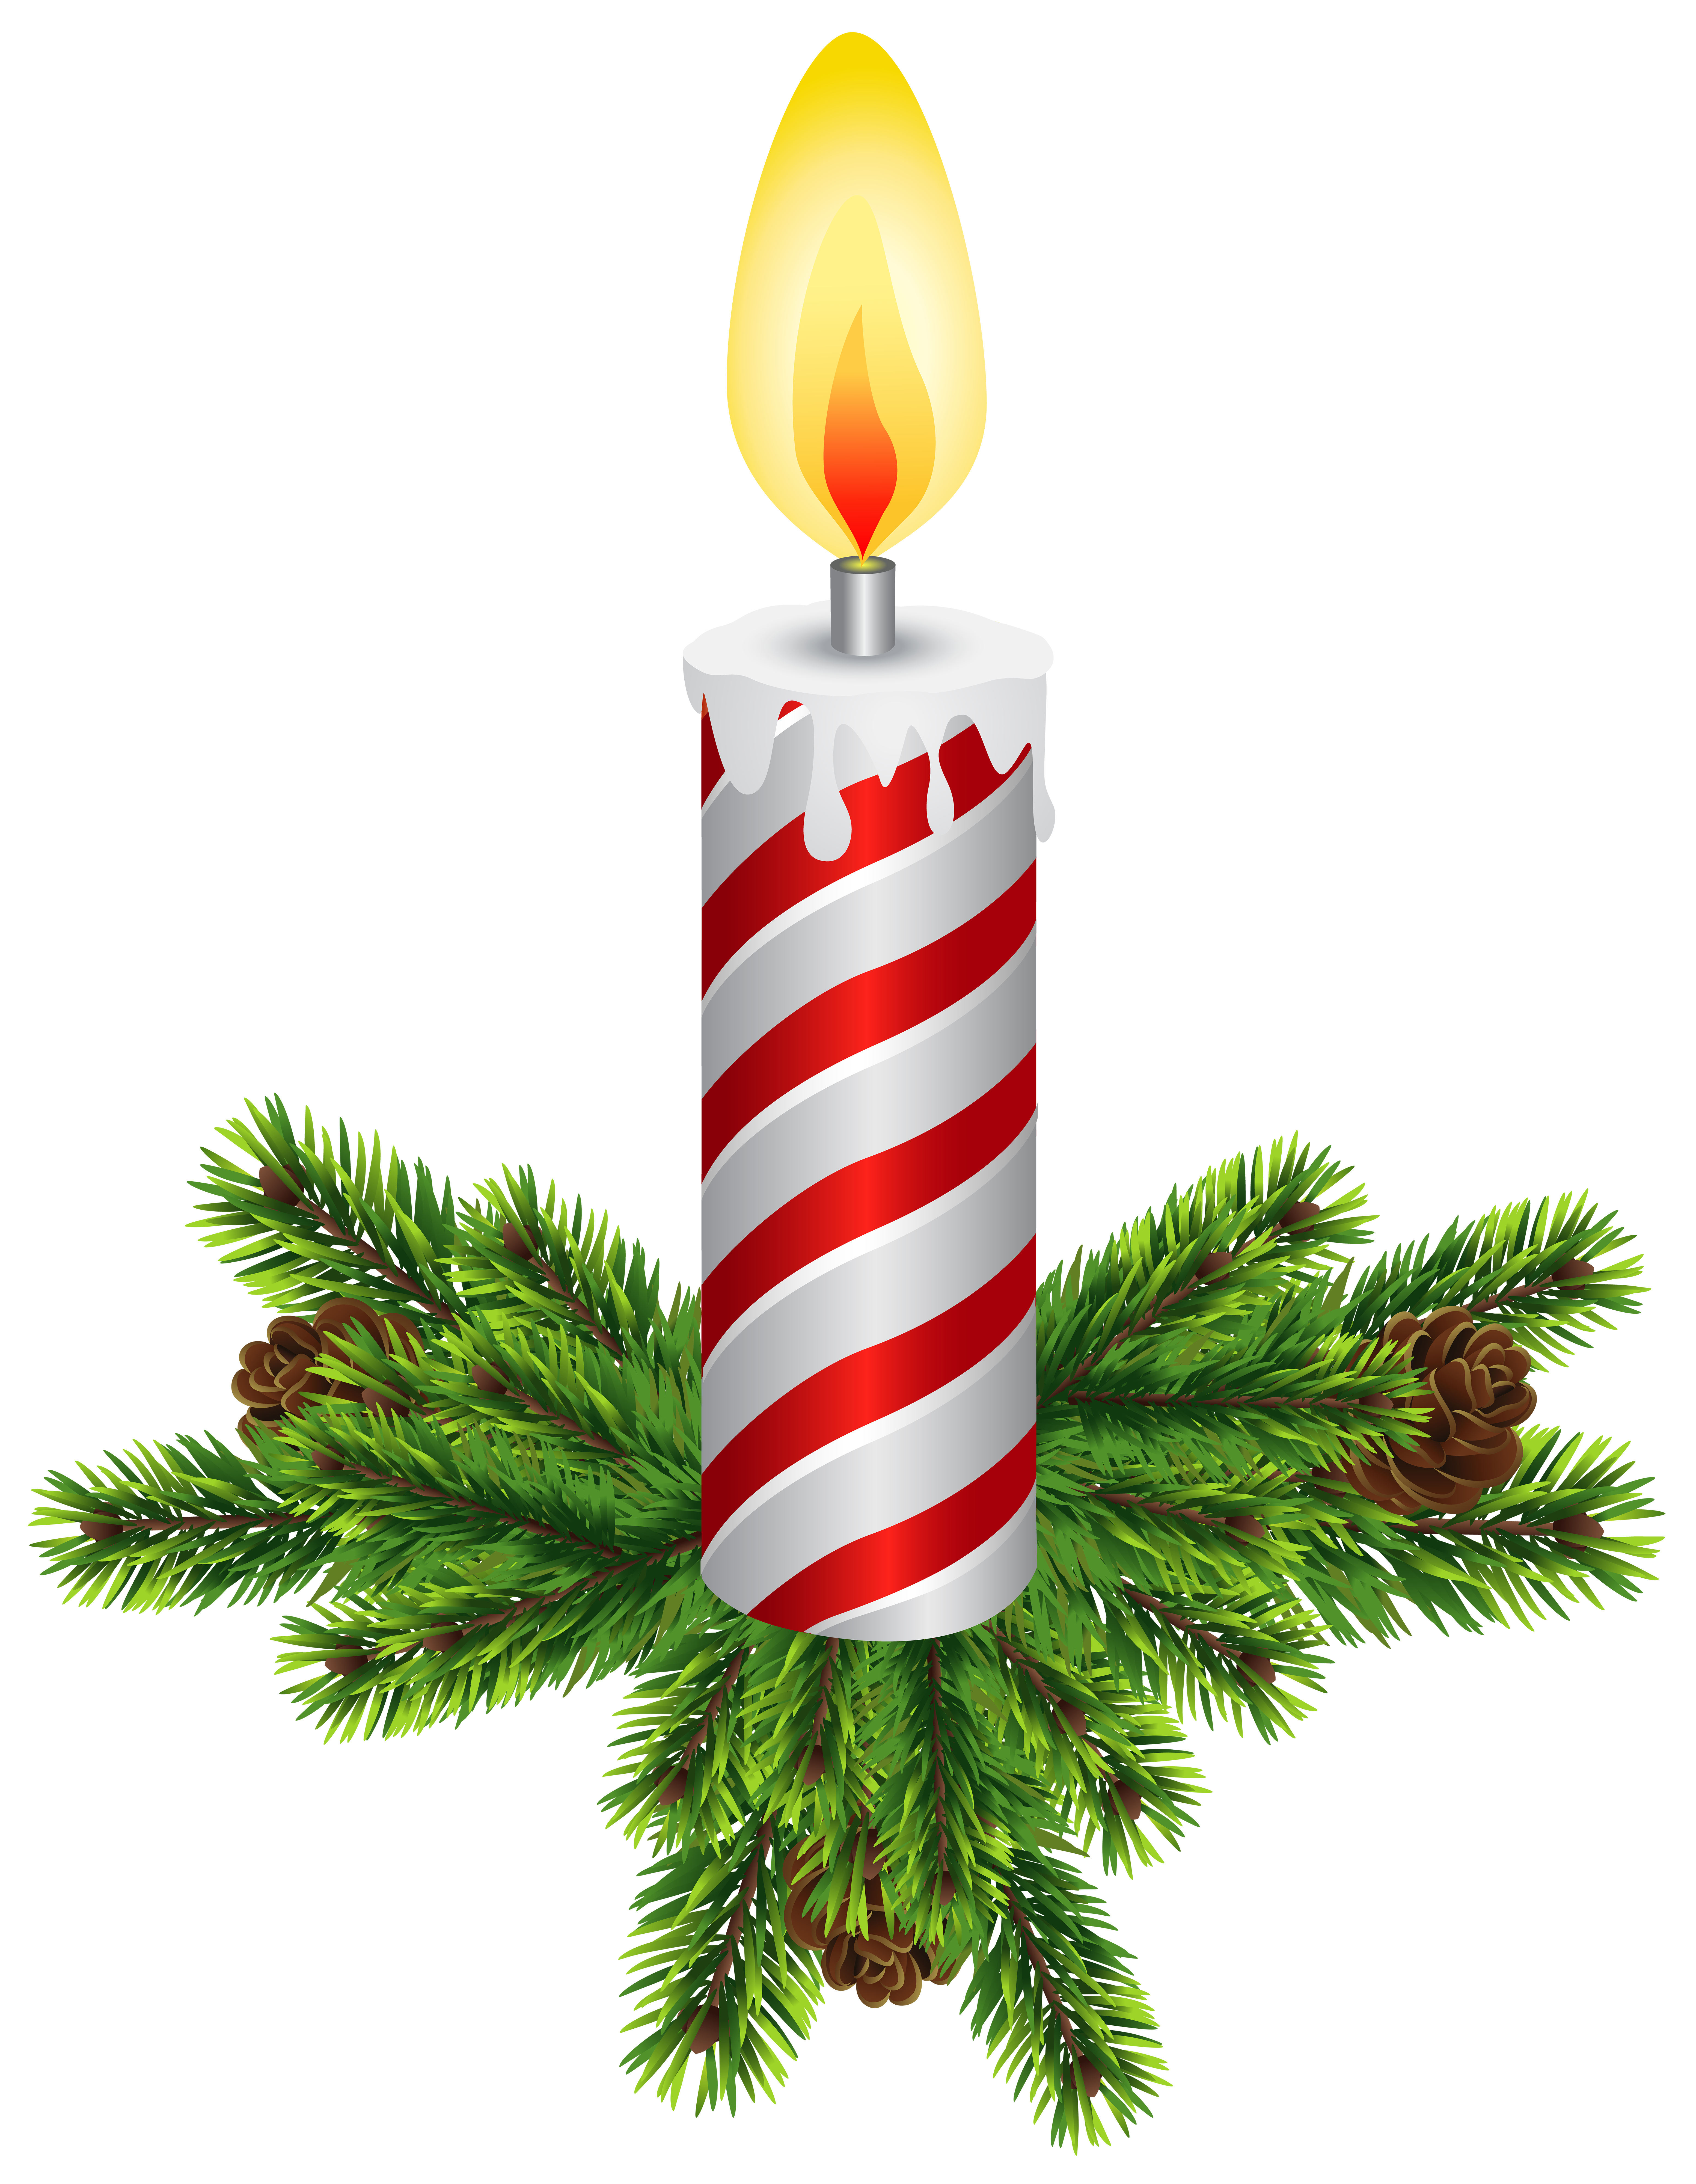 Christmas pine cone png. Clipart at getdrawings com